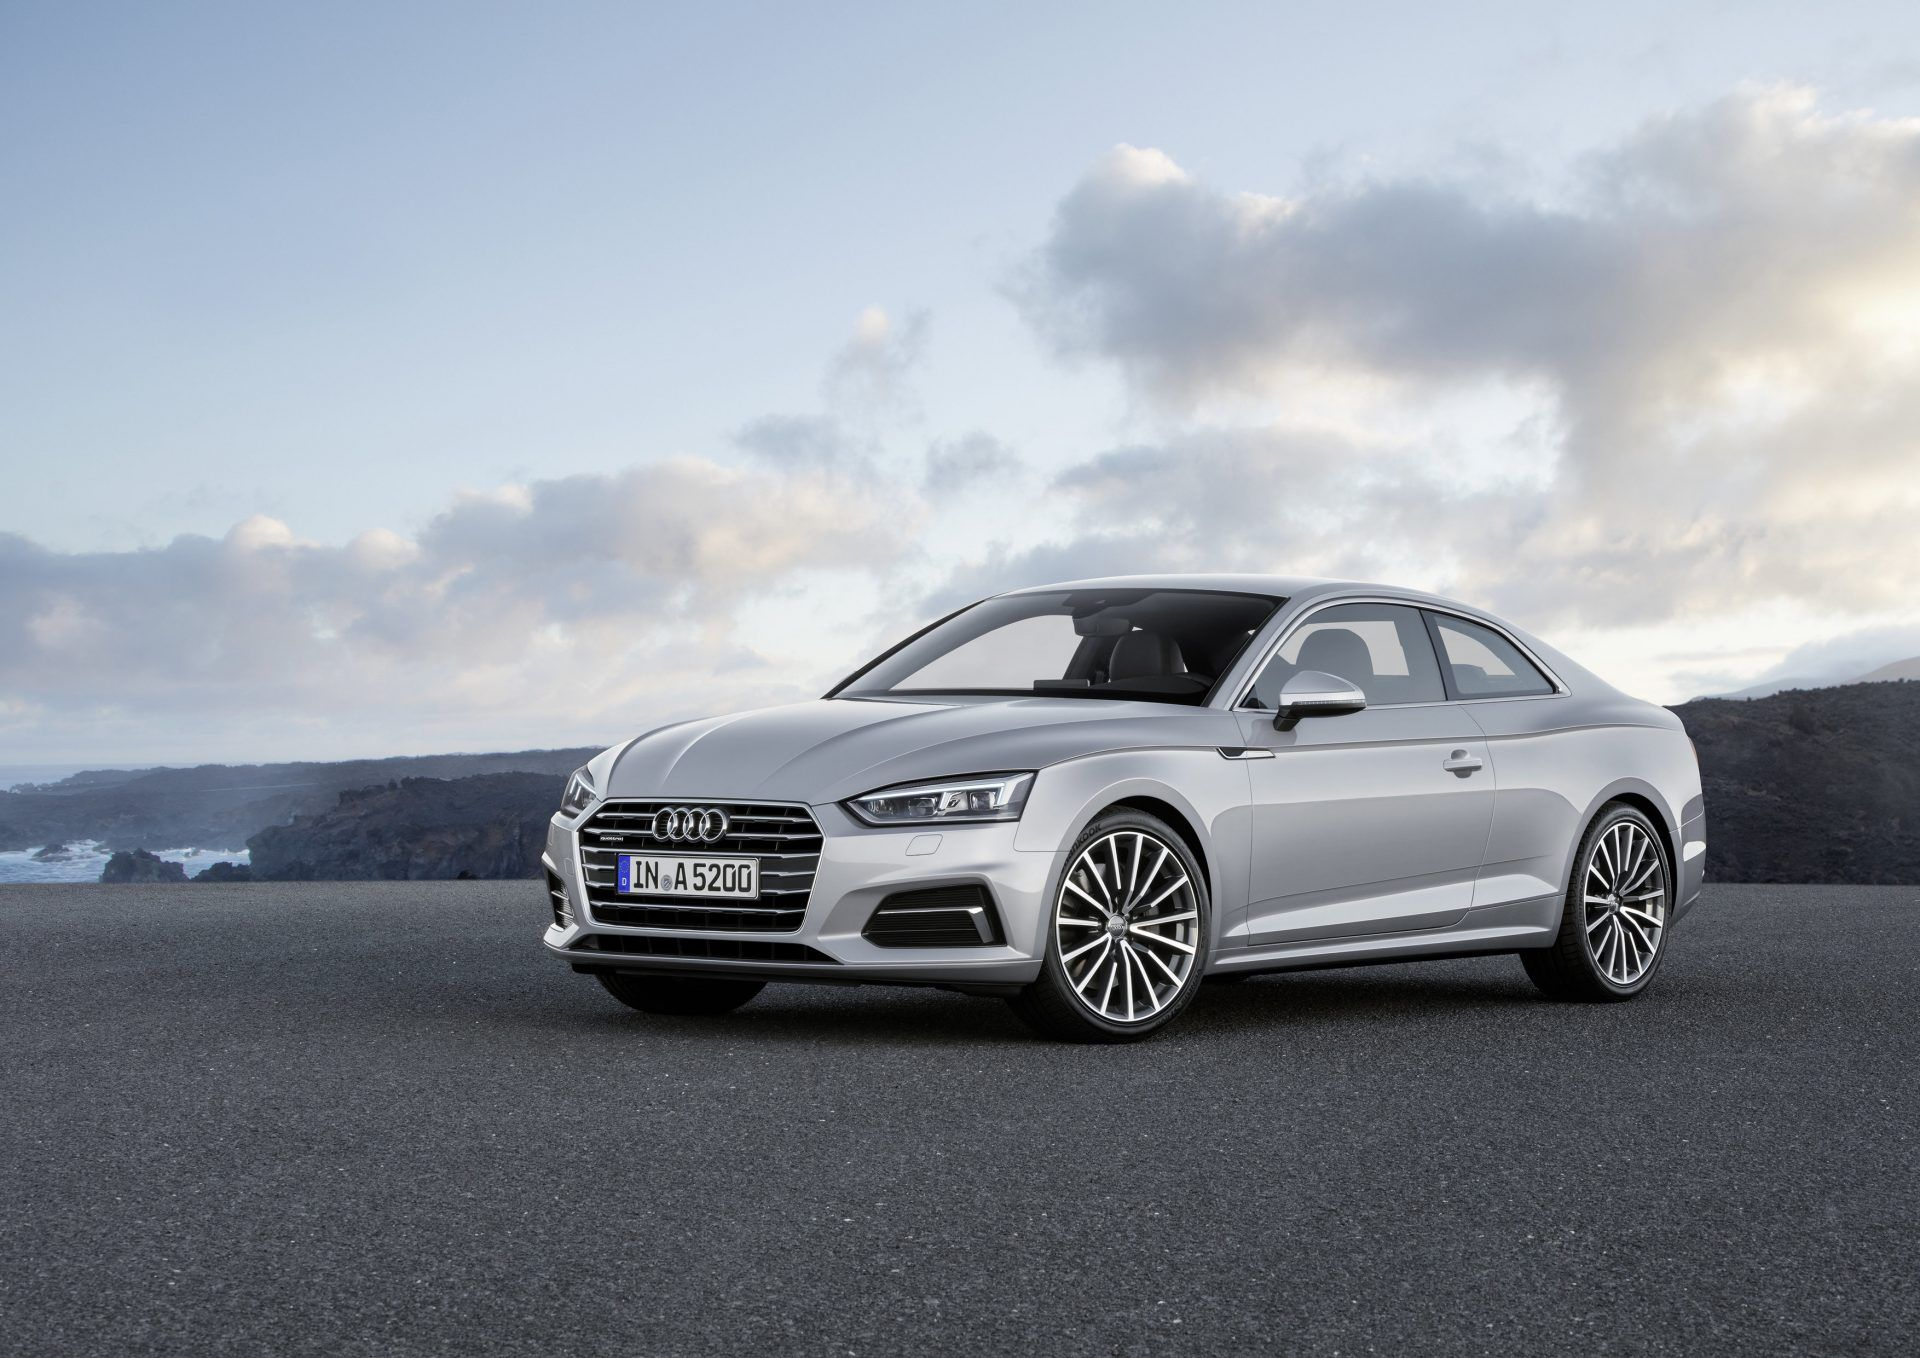 Which To Buy Audi A5 Coupe Vs Audi A5 Sportback Audi A5 Coupe Audi A5 A5 Coupe